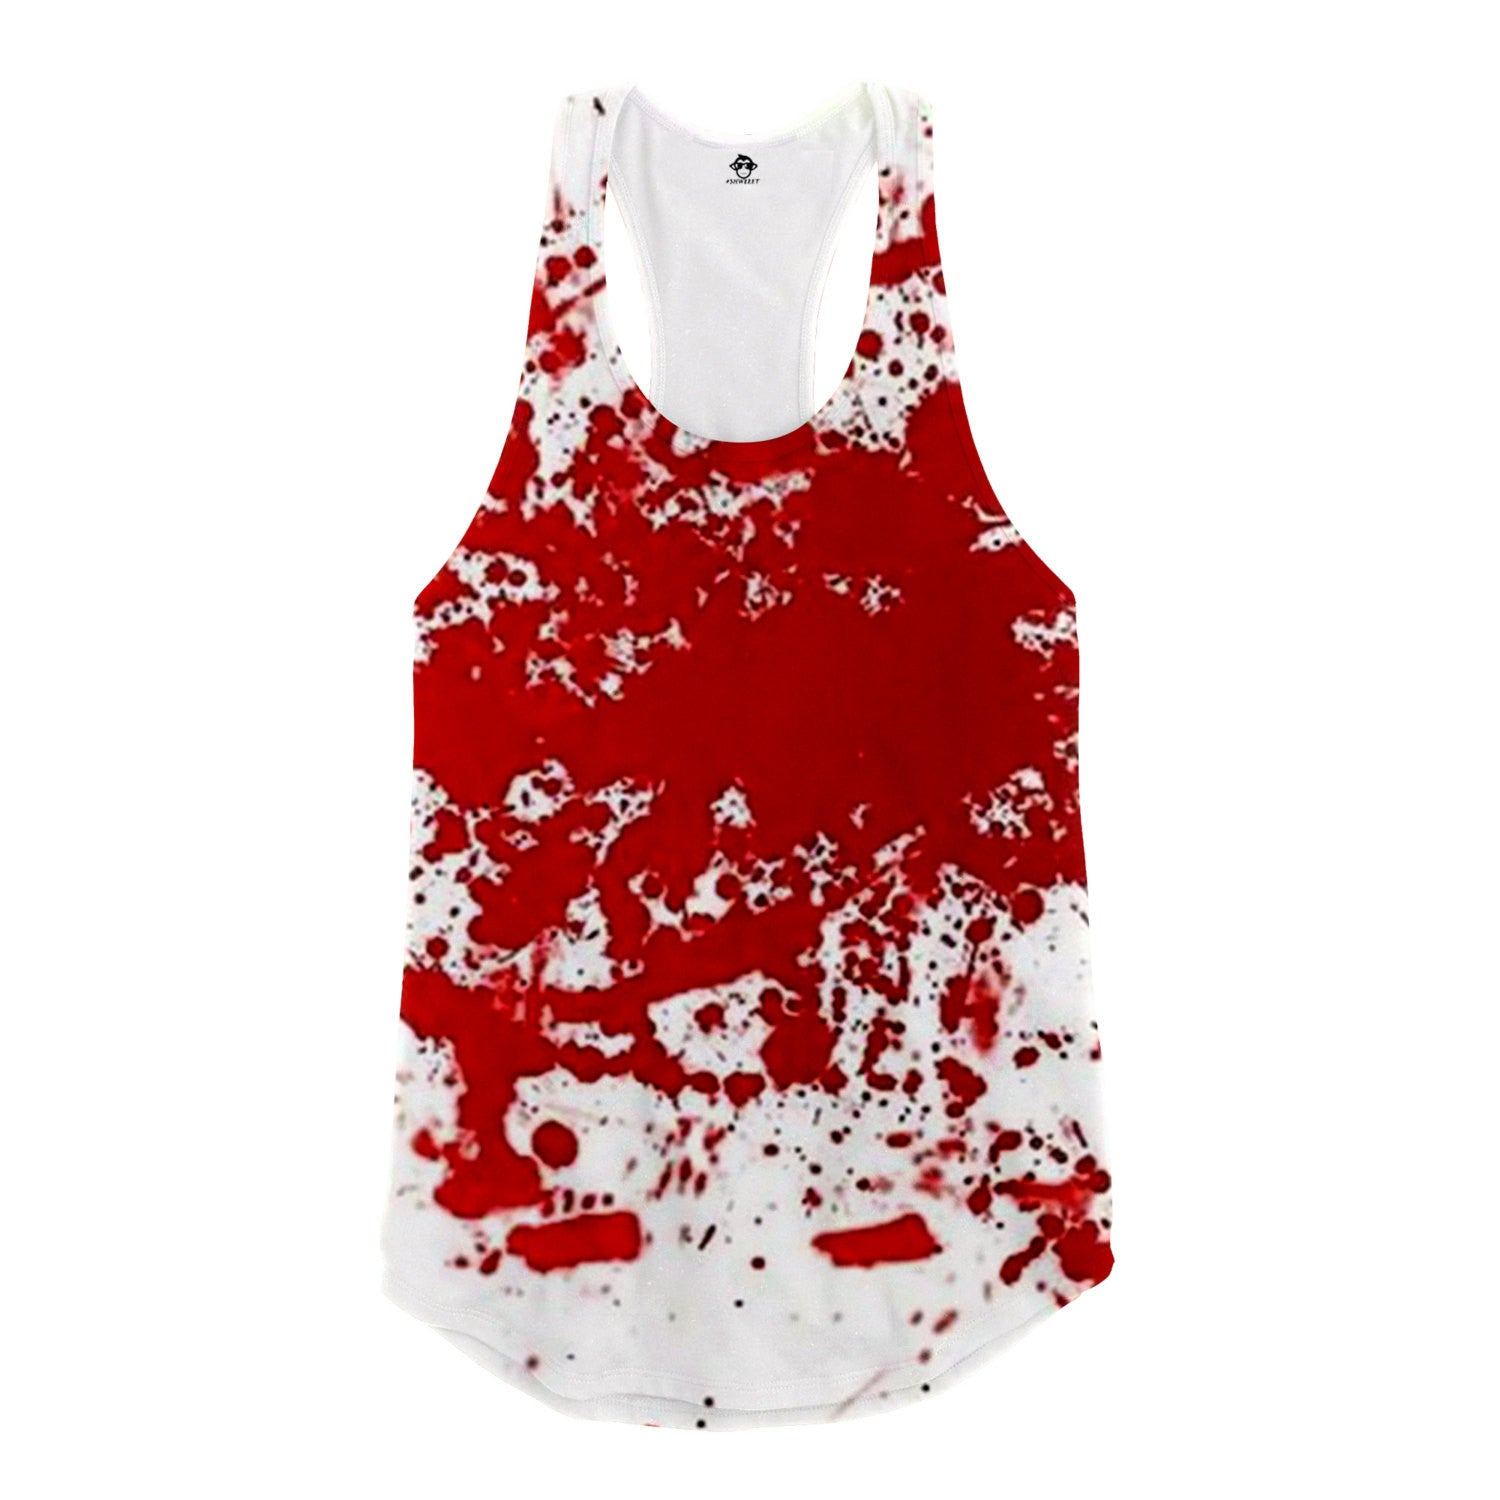 Bloody Racerback Tank Top